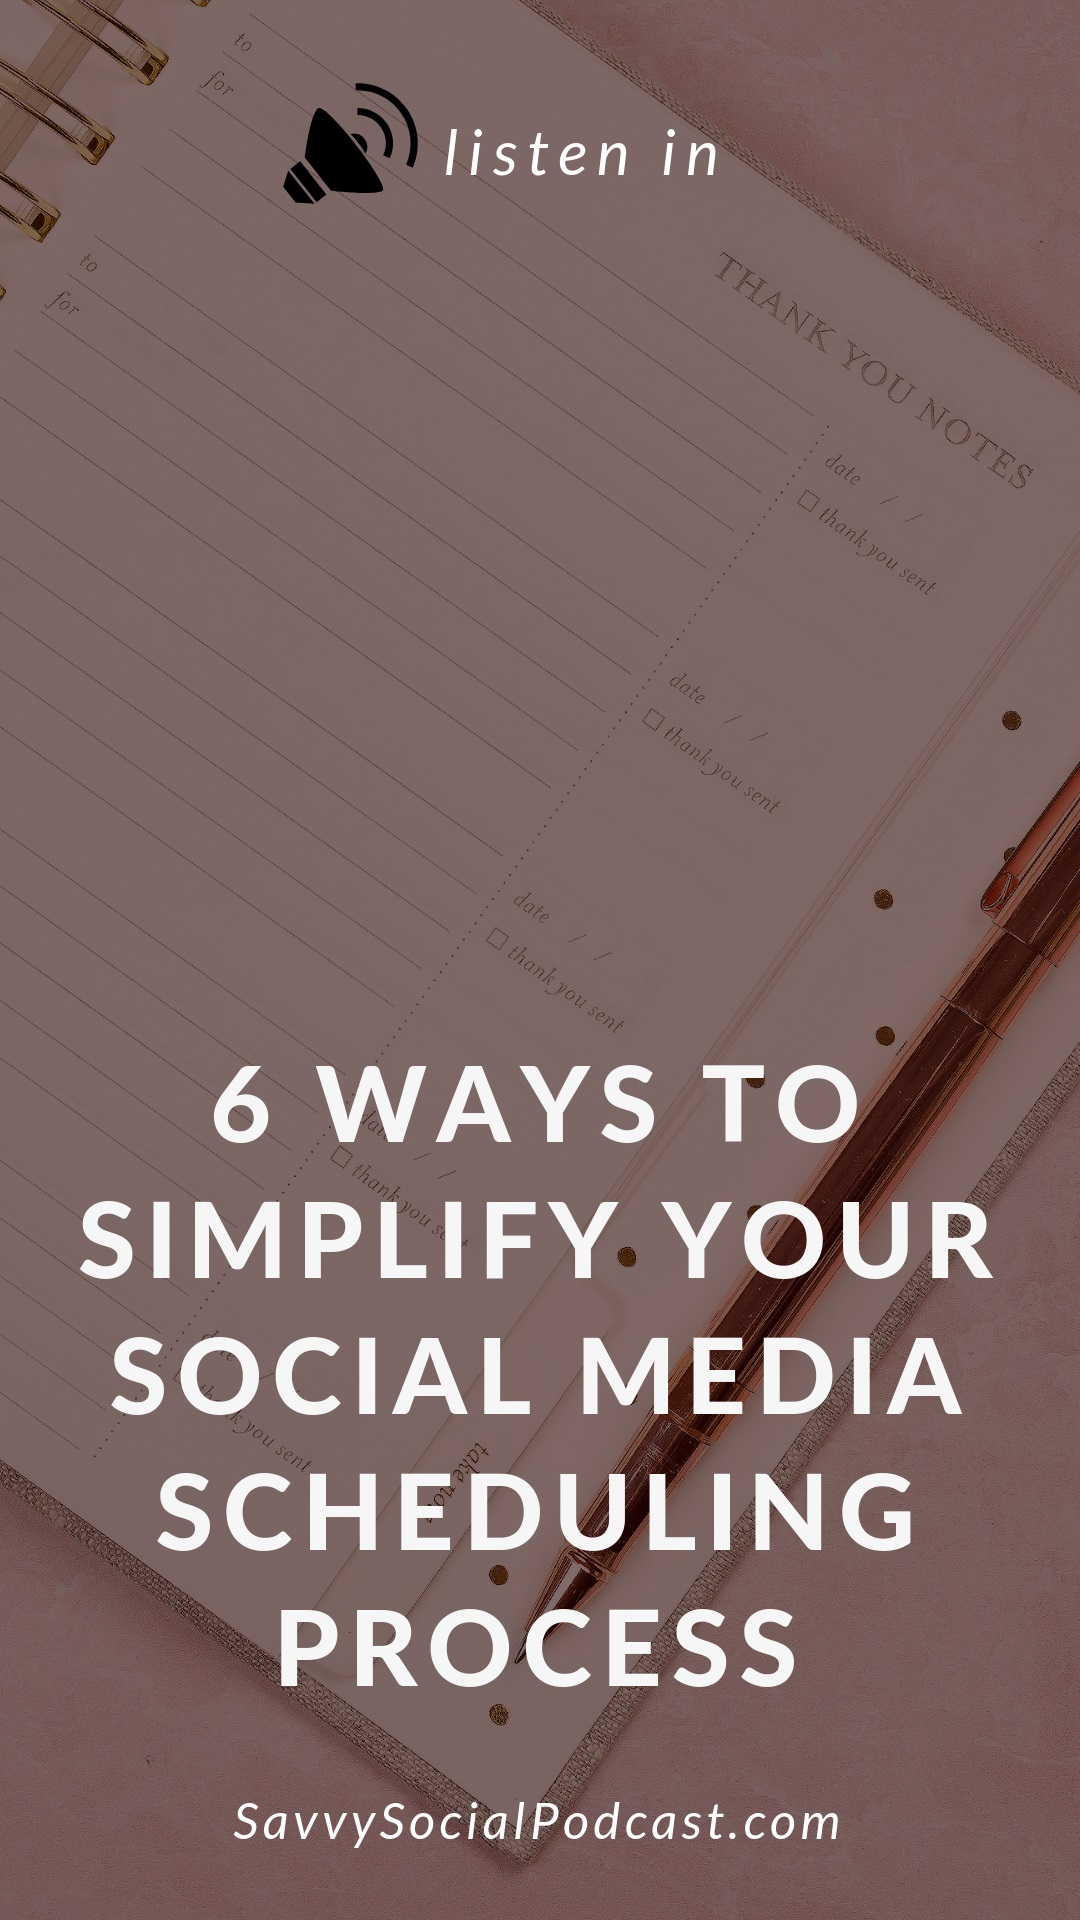 6 Ways to Simplify Your Social Media Scheduling Process